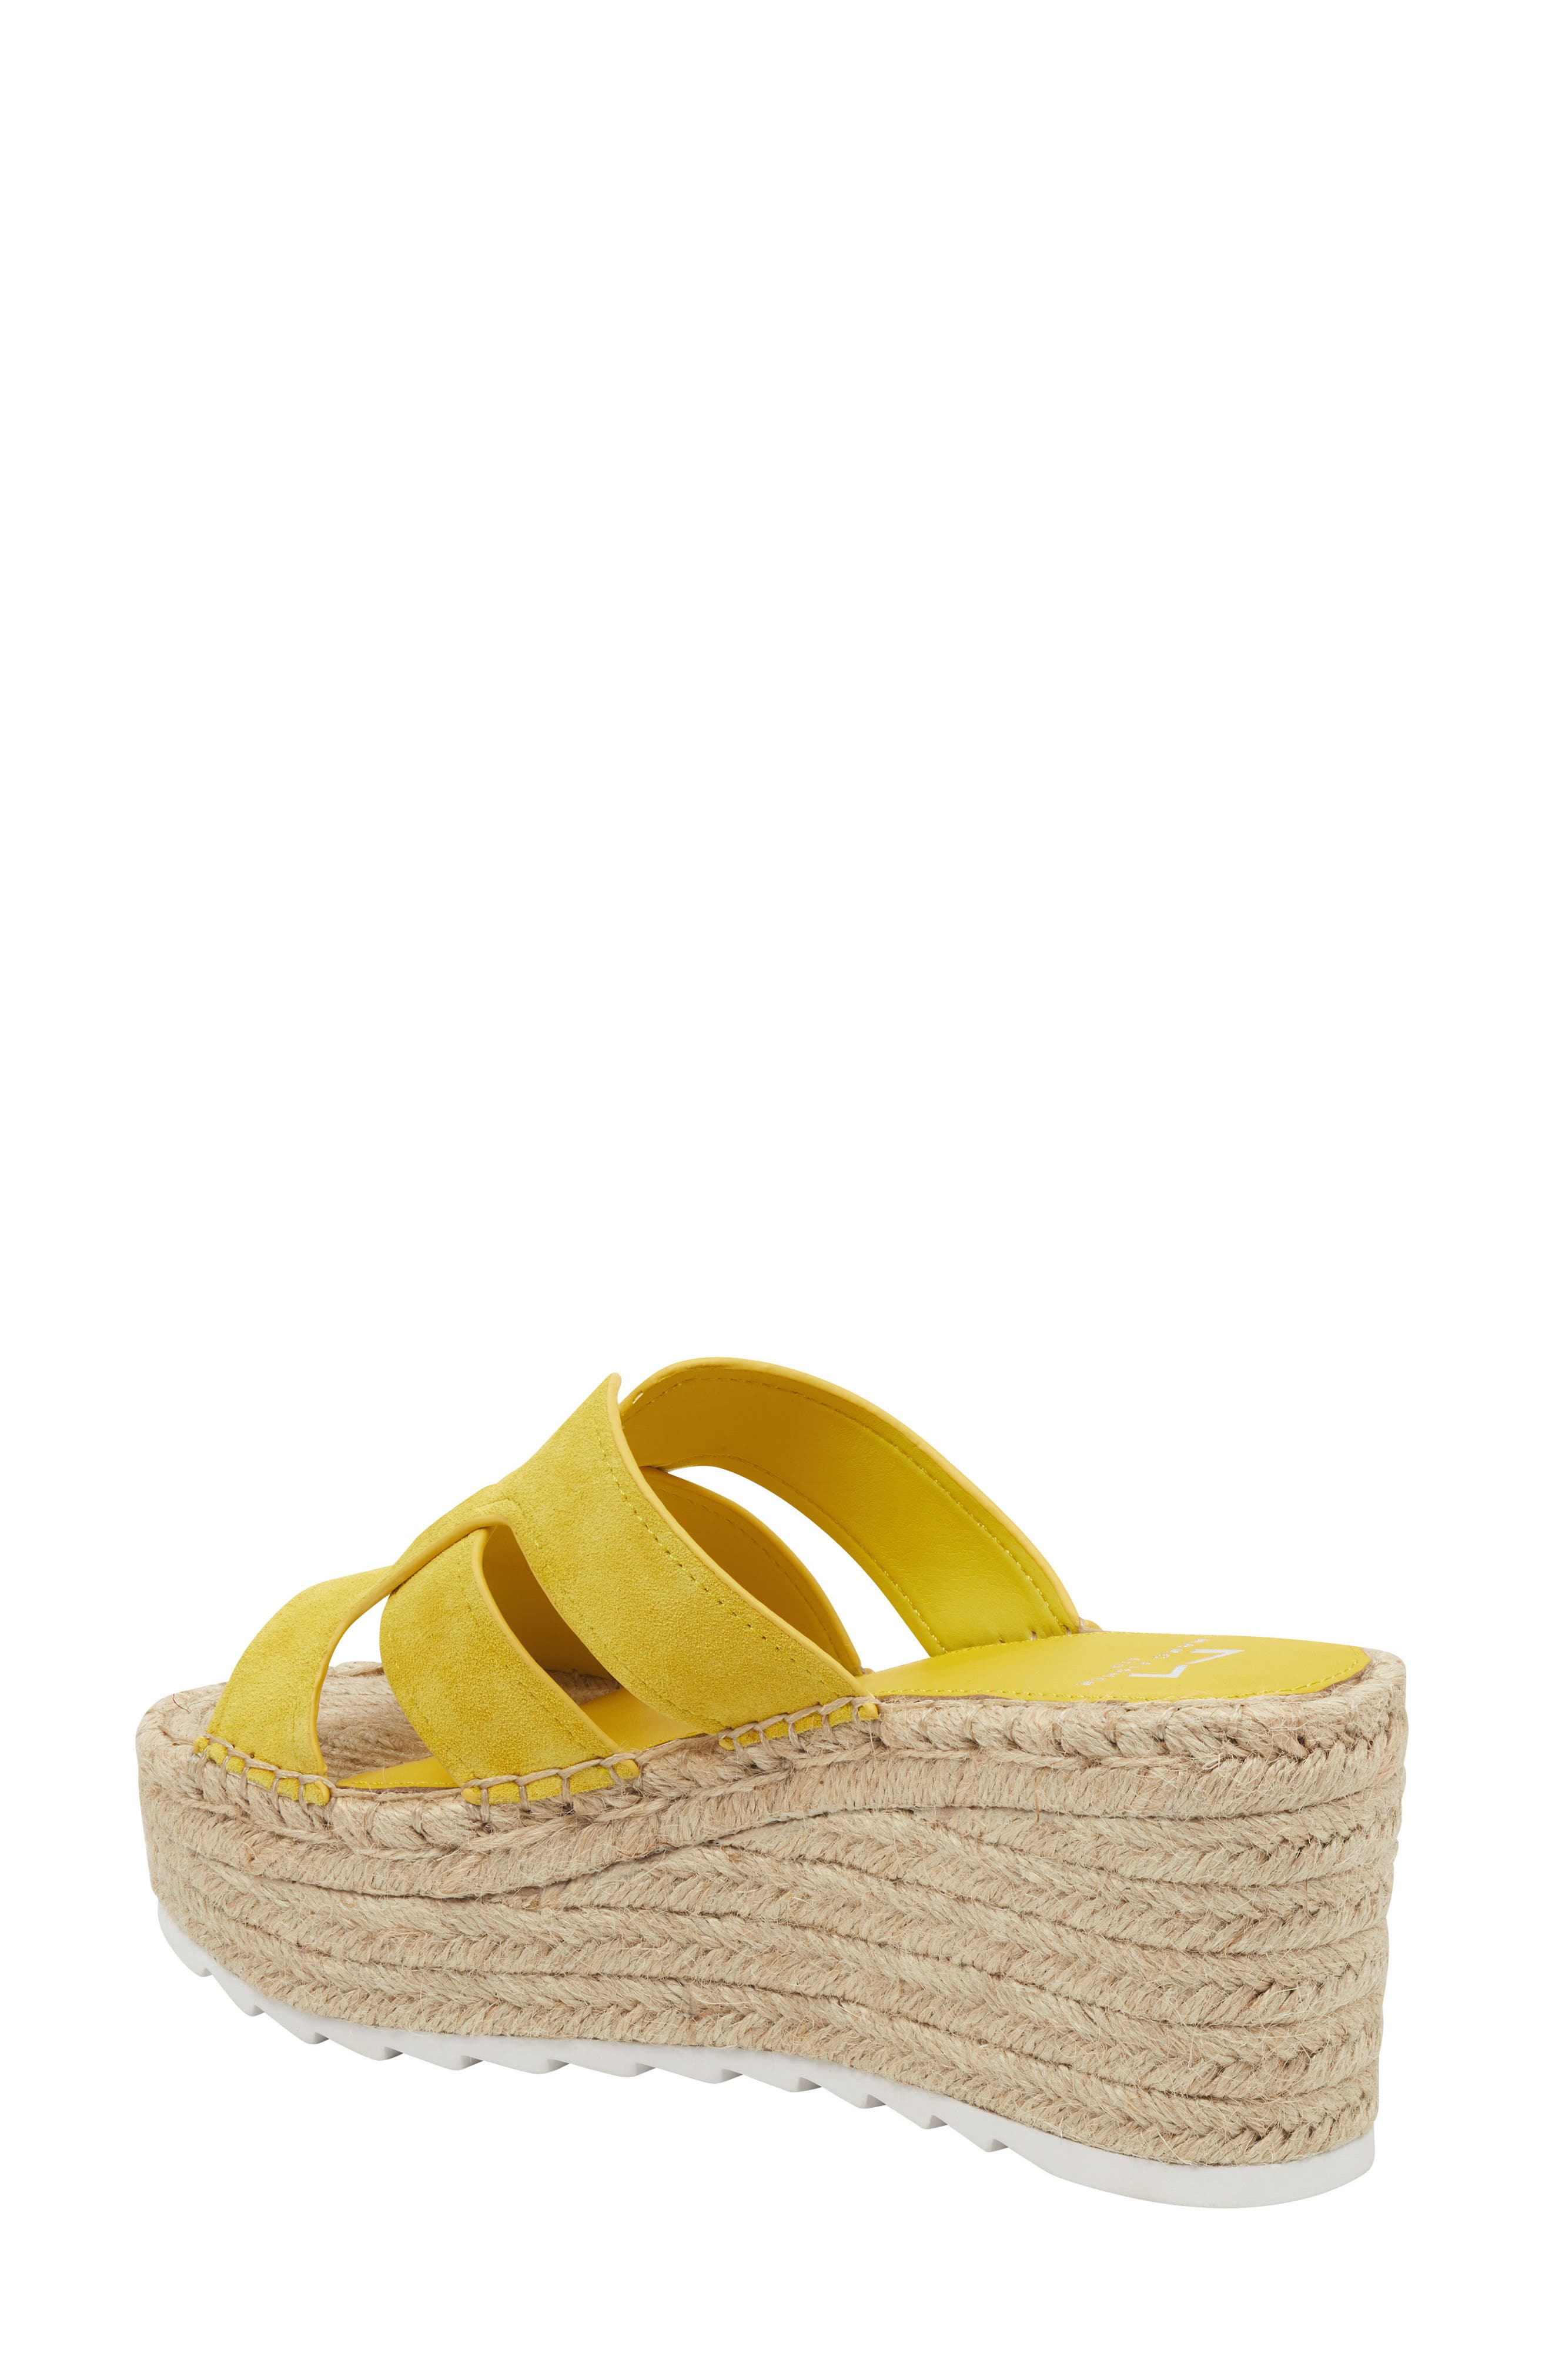 MARC FISHER LTD, Robbyn Espadrille Wedge Sandal, Alternate thumbnail 2, color, YELLOW SUEDE